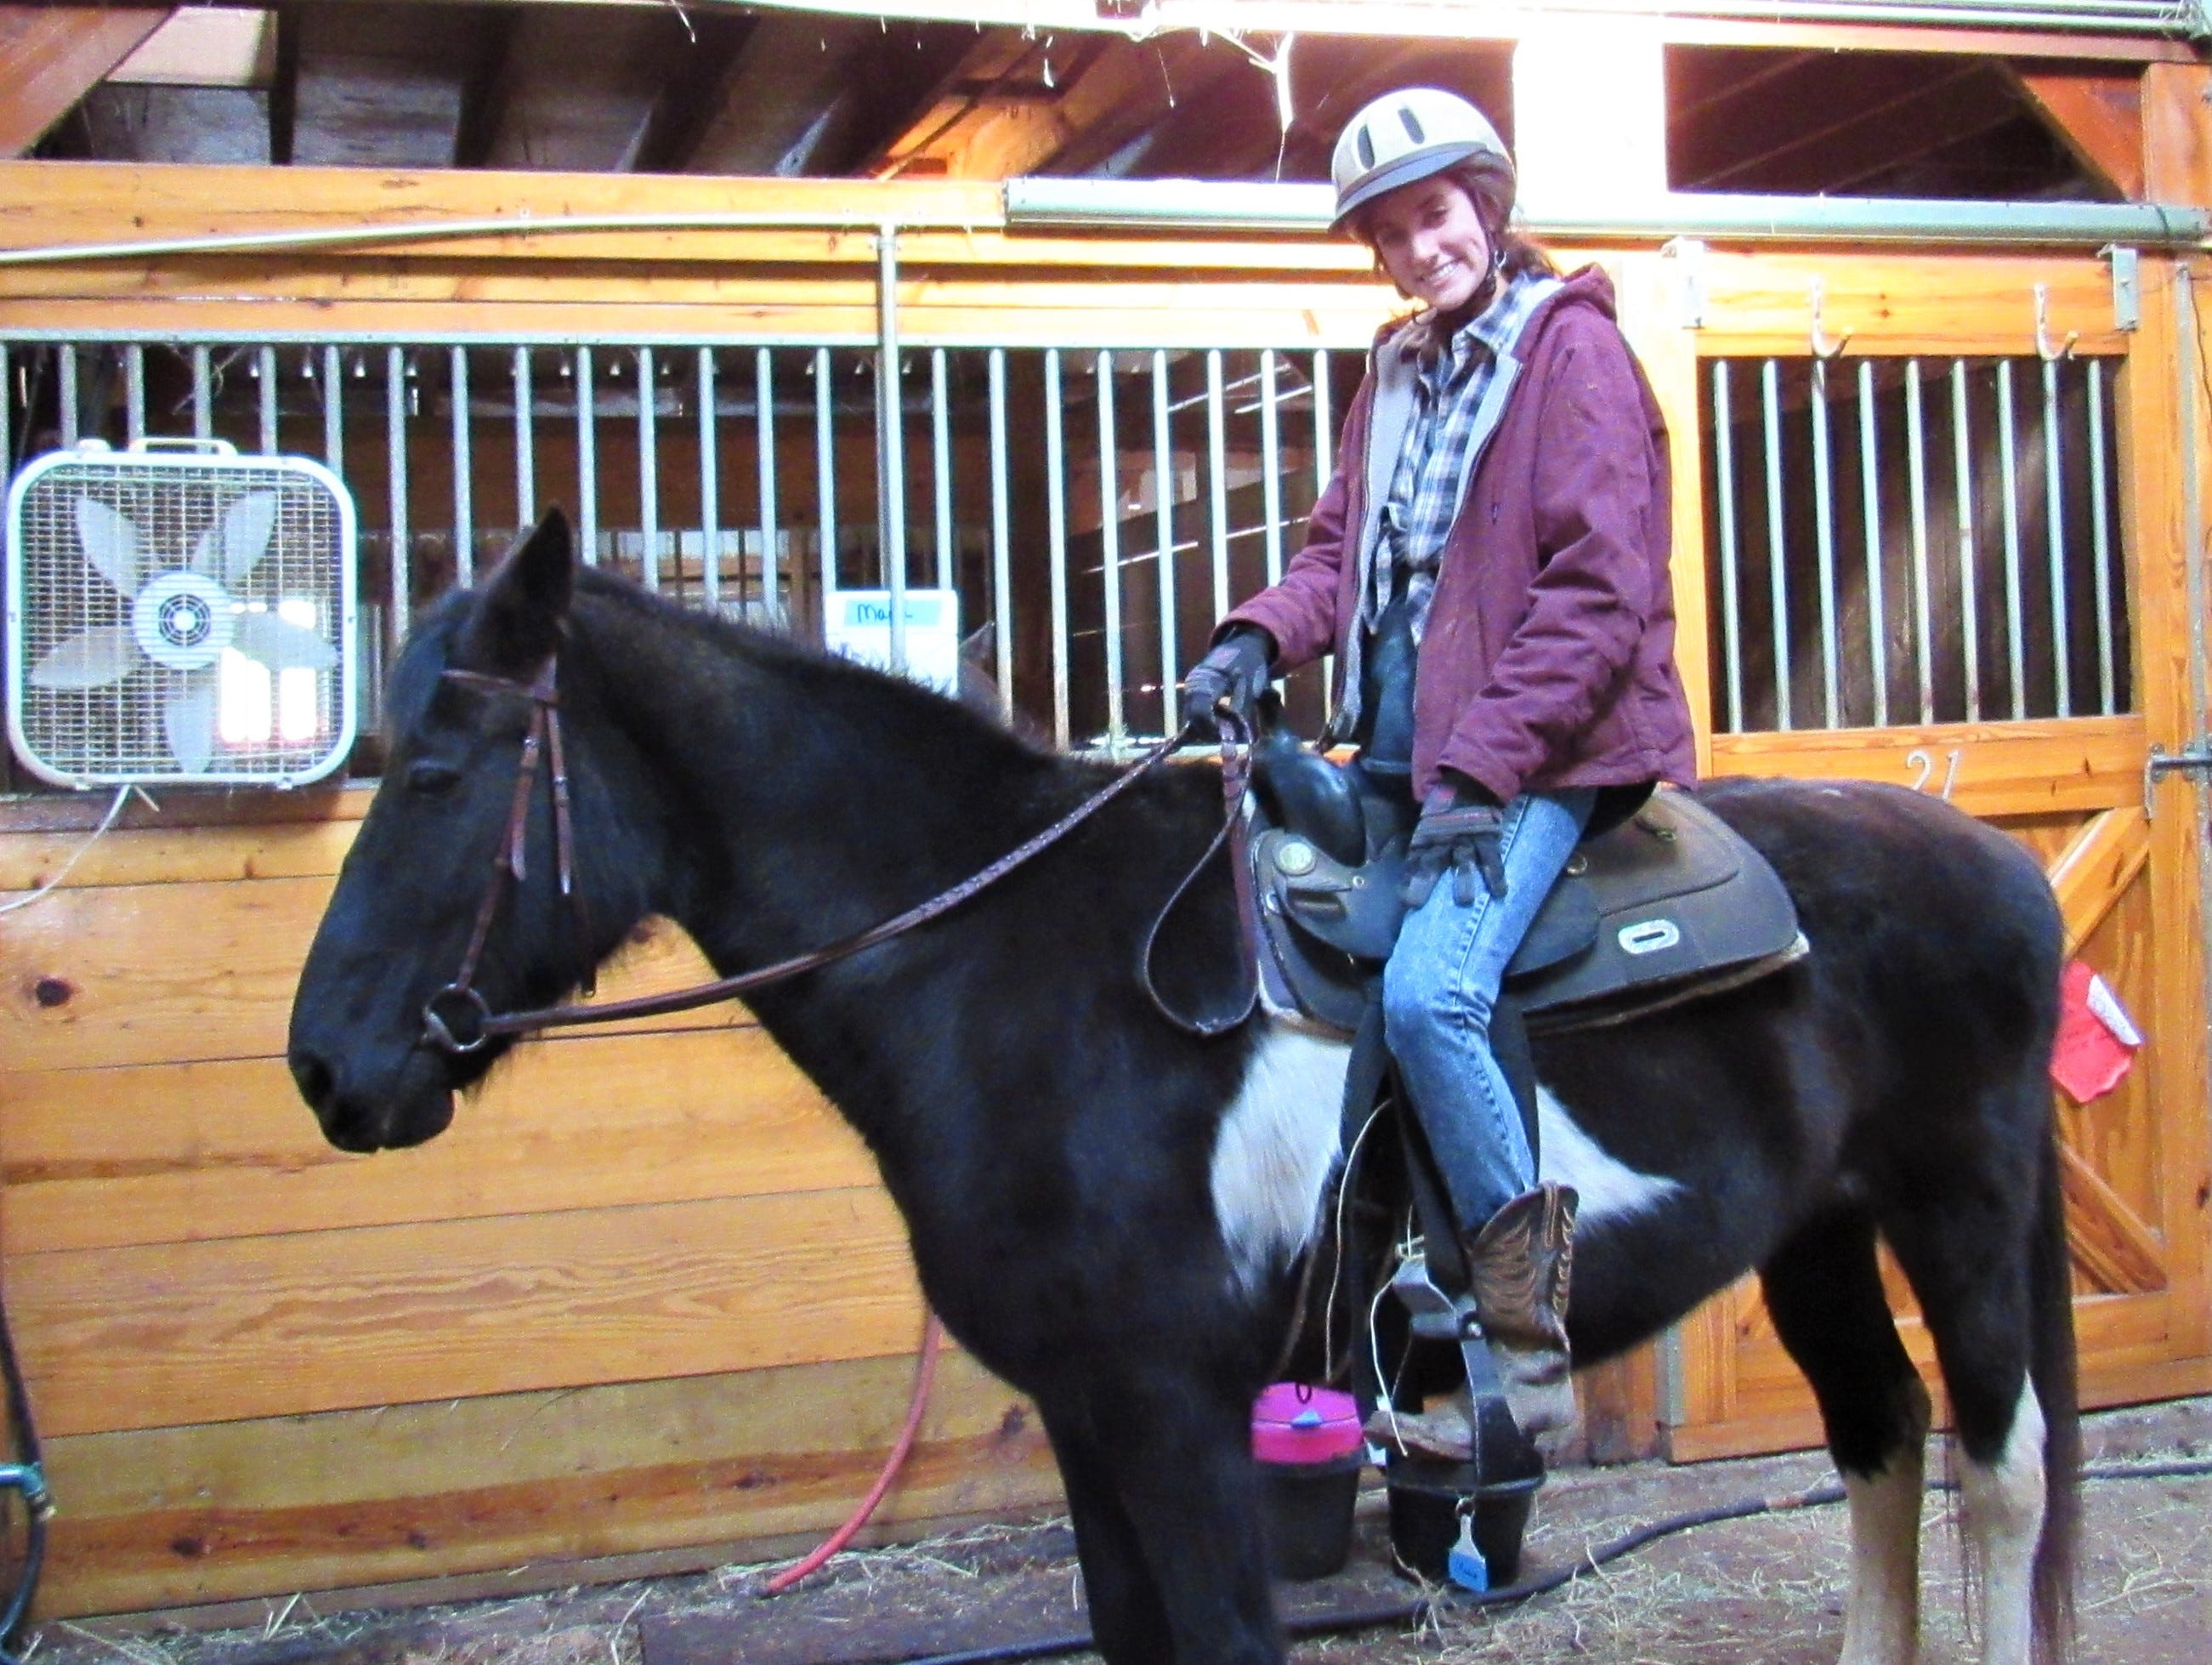 Volunteer exercise rider Victoria Miller gets ready to take Blitzen through a strength-building workout.